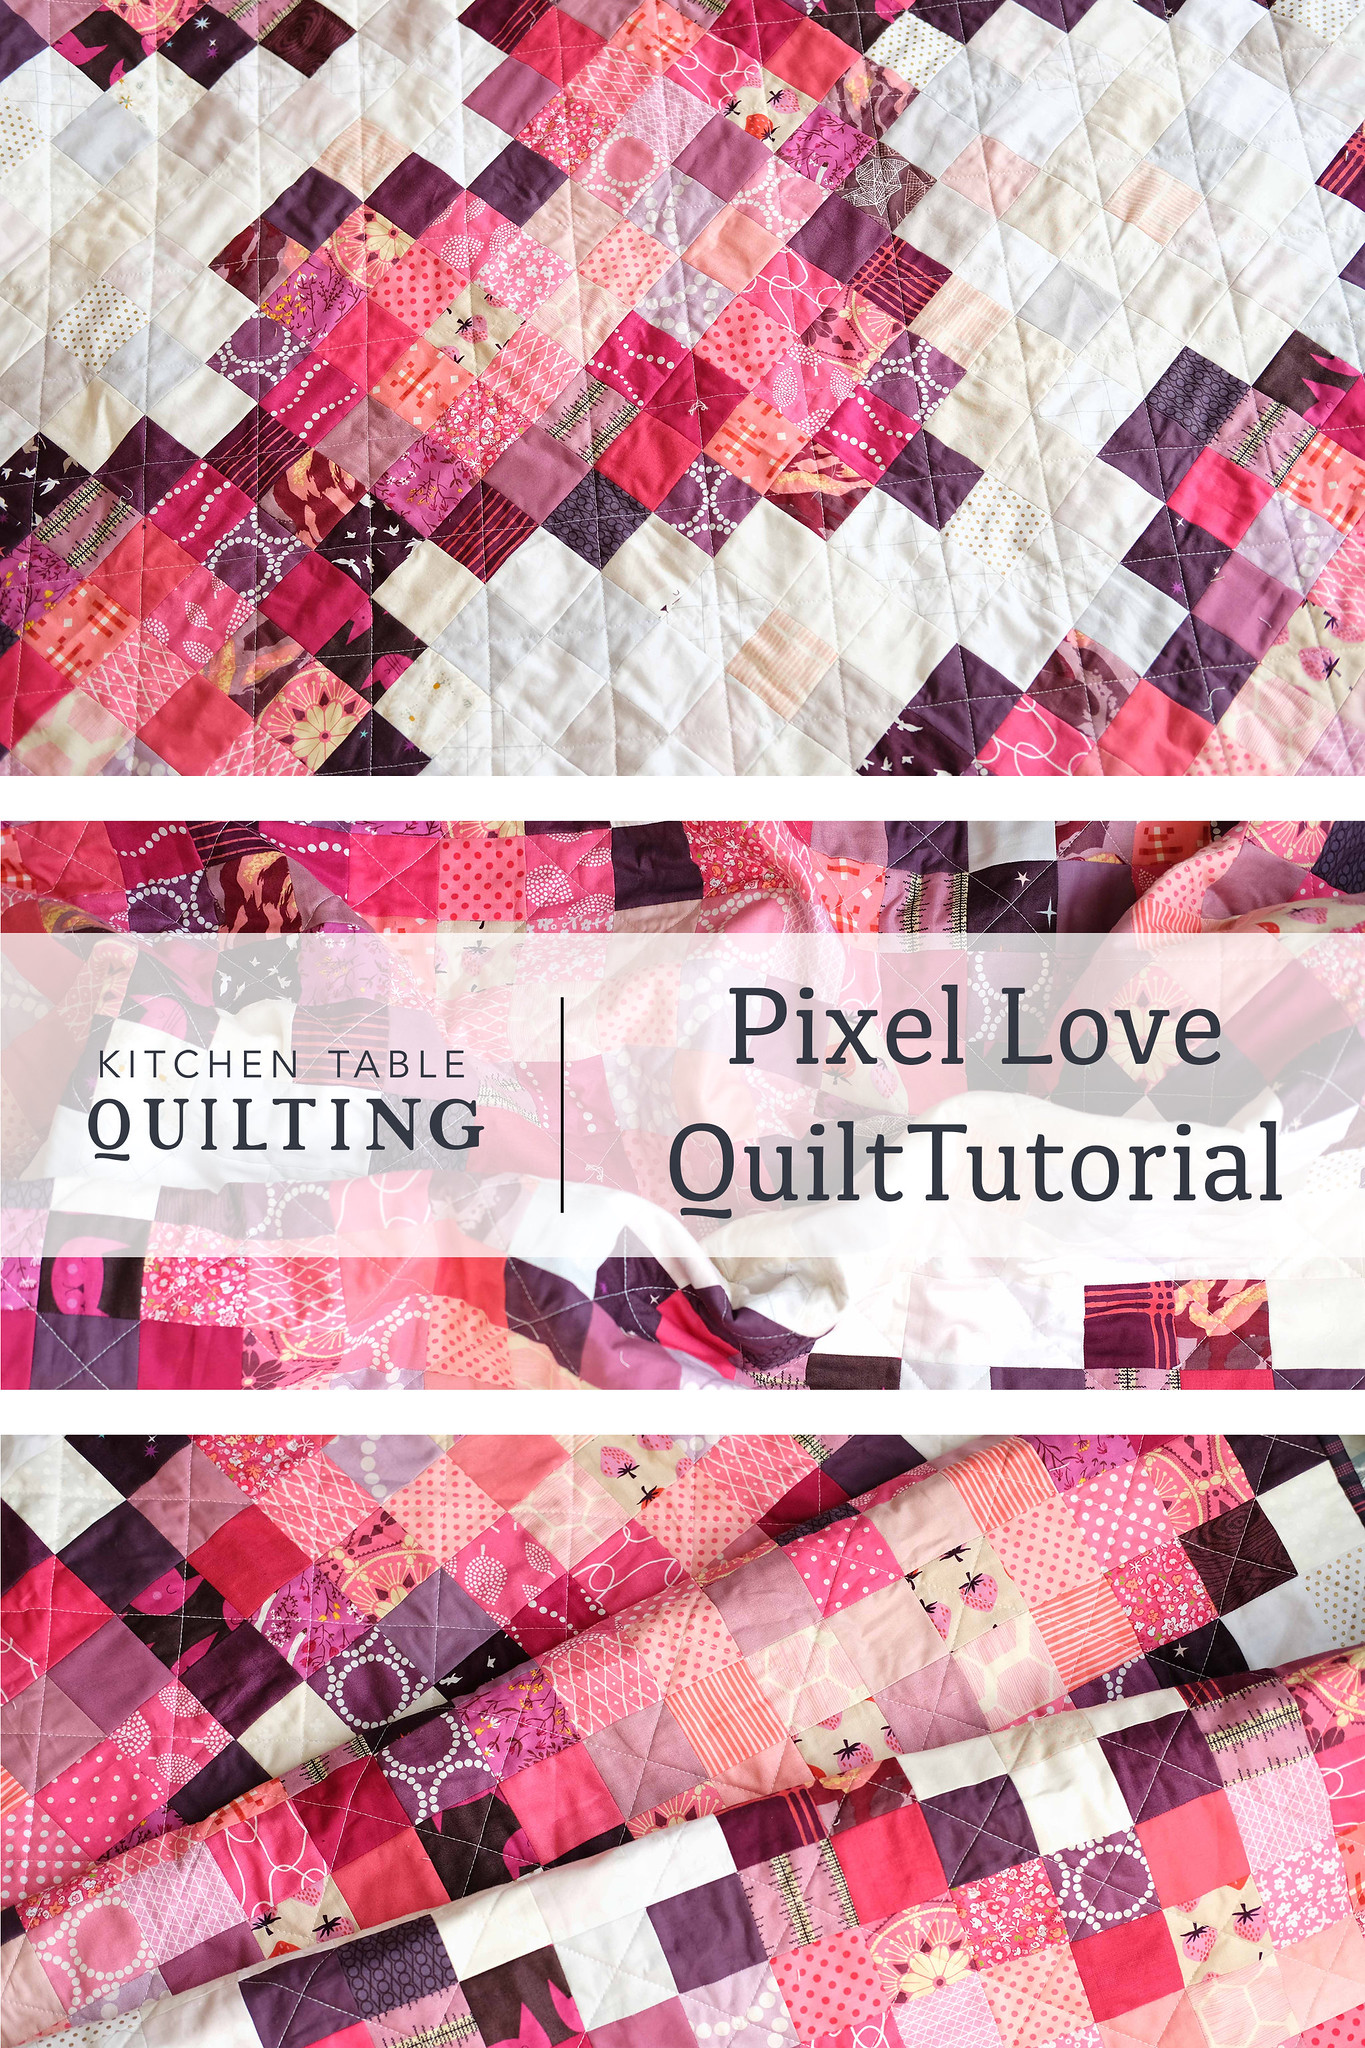 Pixel Love Quilt Tutorial - Kitchen Table Quilting